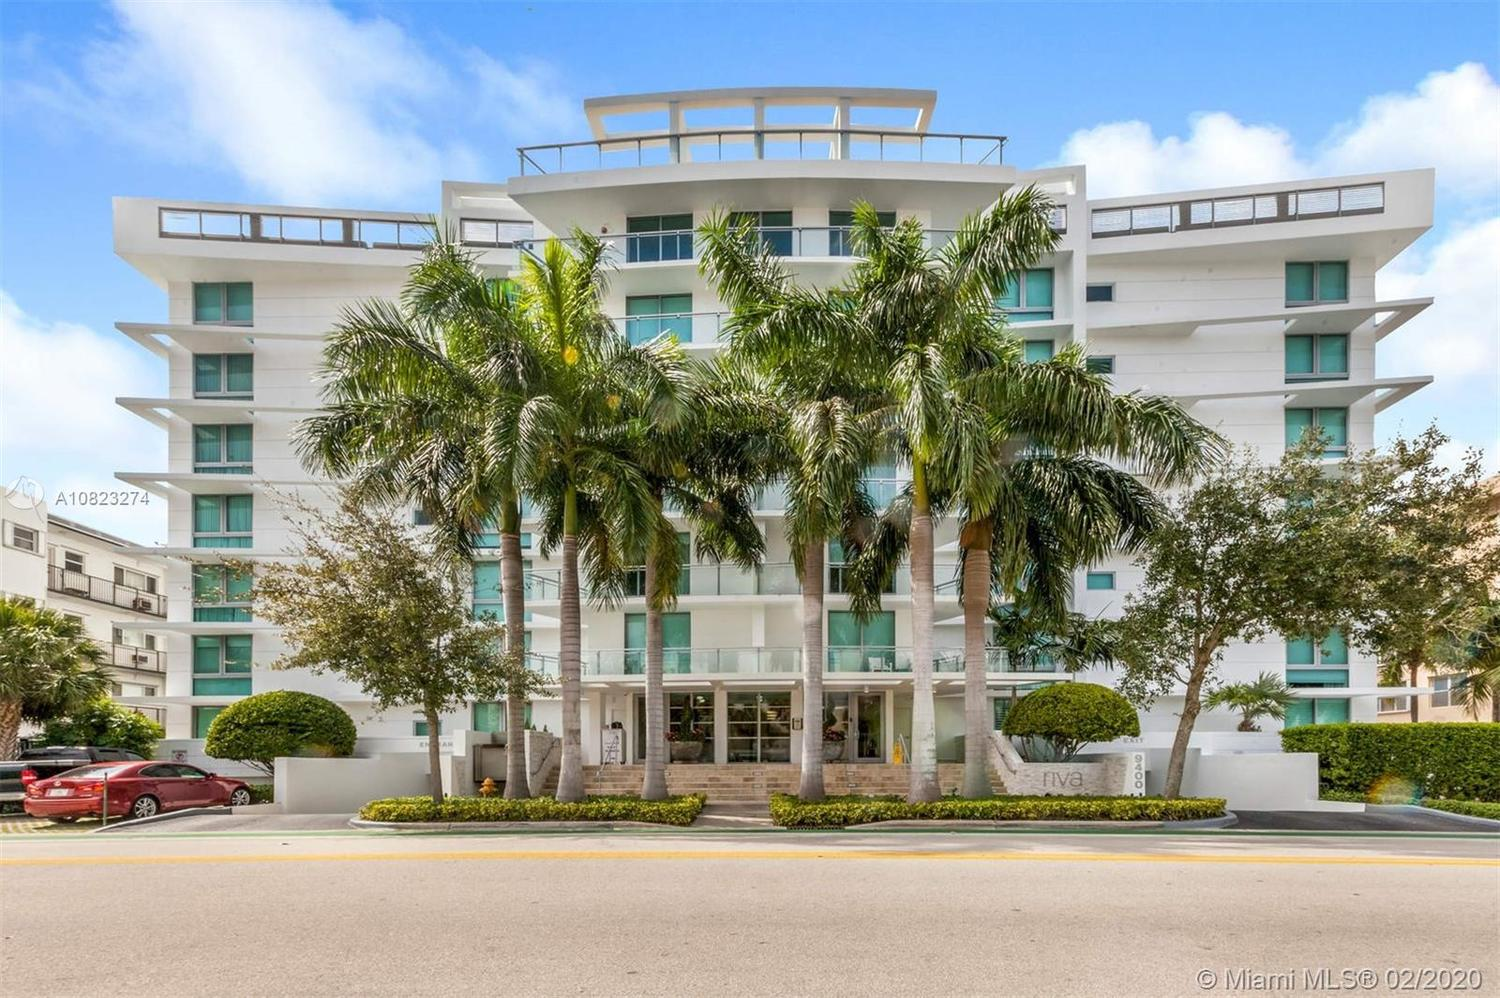 9400 West Bay Harbor Drive, Unit 303 Bay Harbor Islands, FL 33154